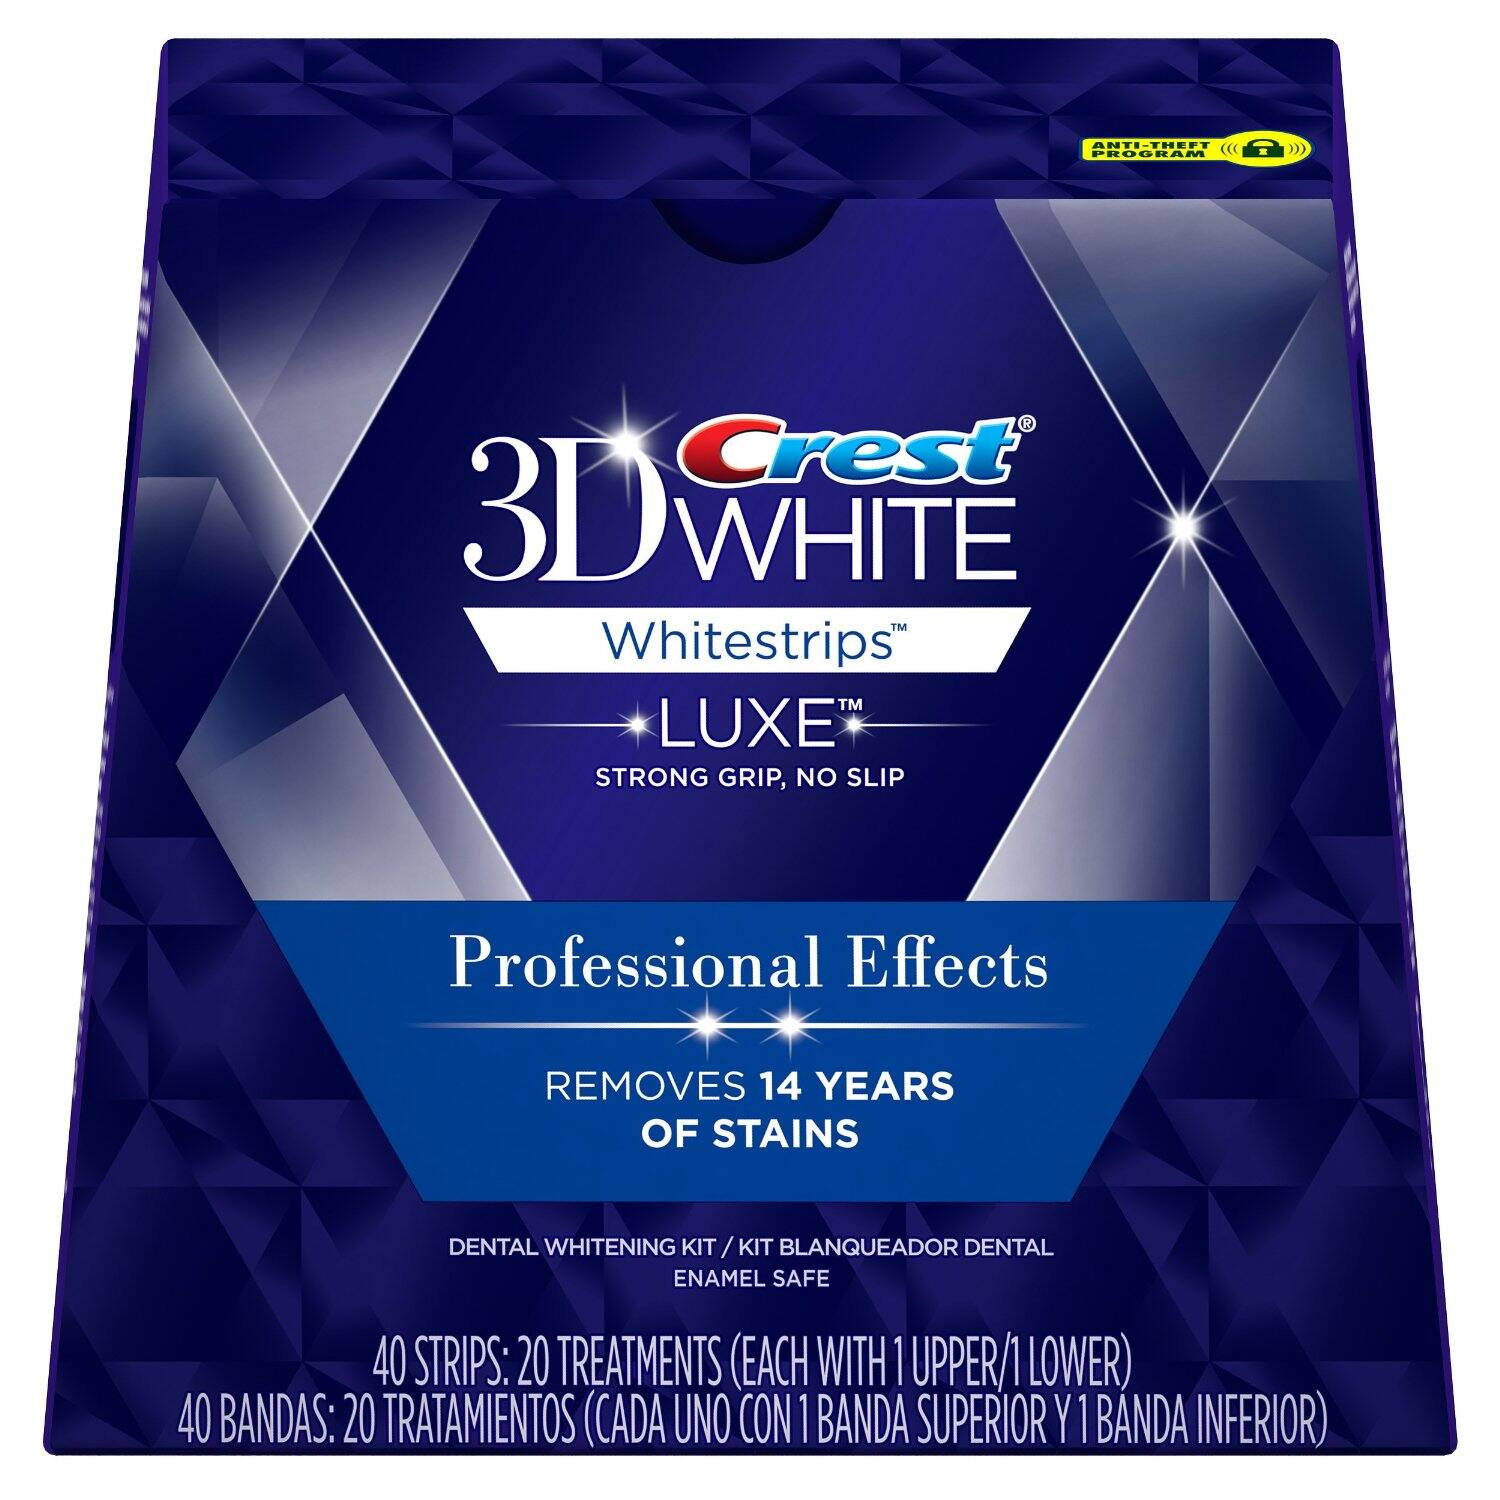 20-Treatment Crest 3D White Luxe Whitestrips Prof. Effects $28.99 @ Amazon